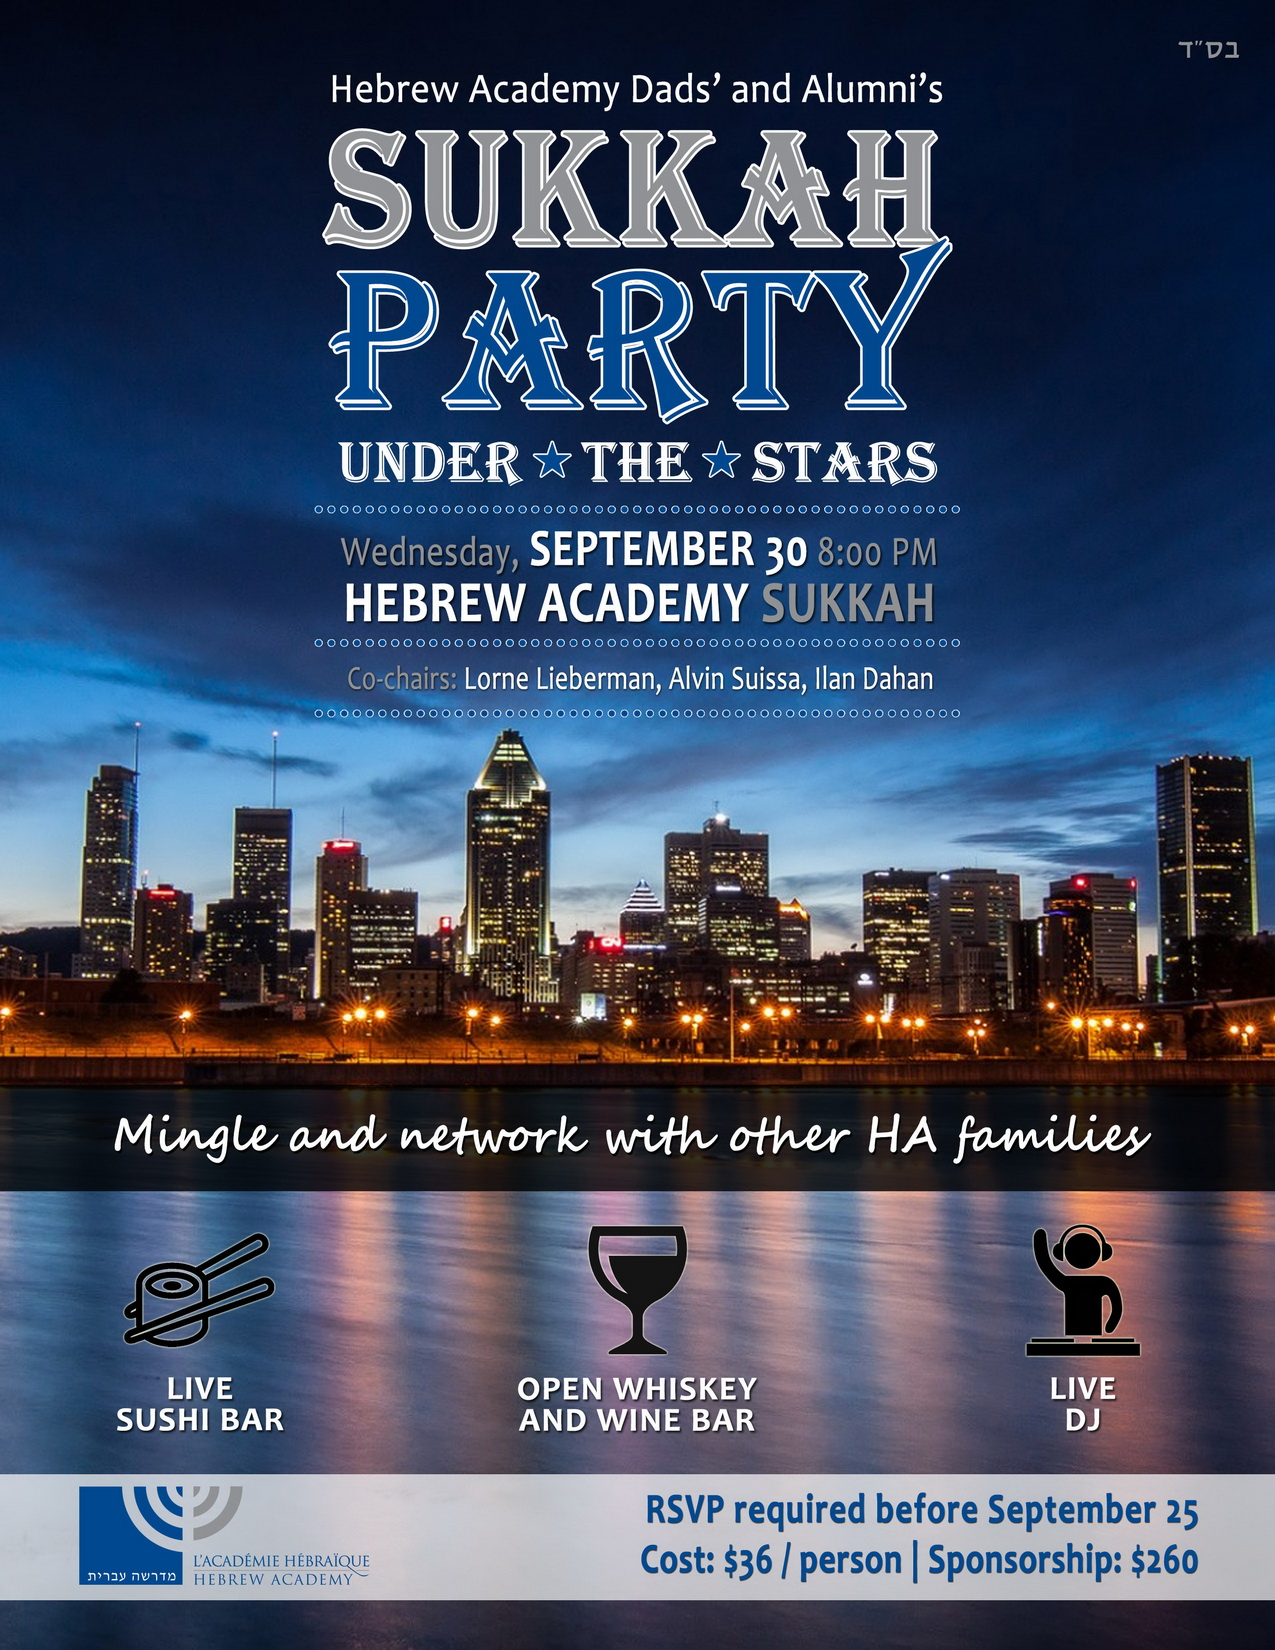 Sukkah Party Under The Stars